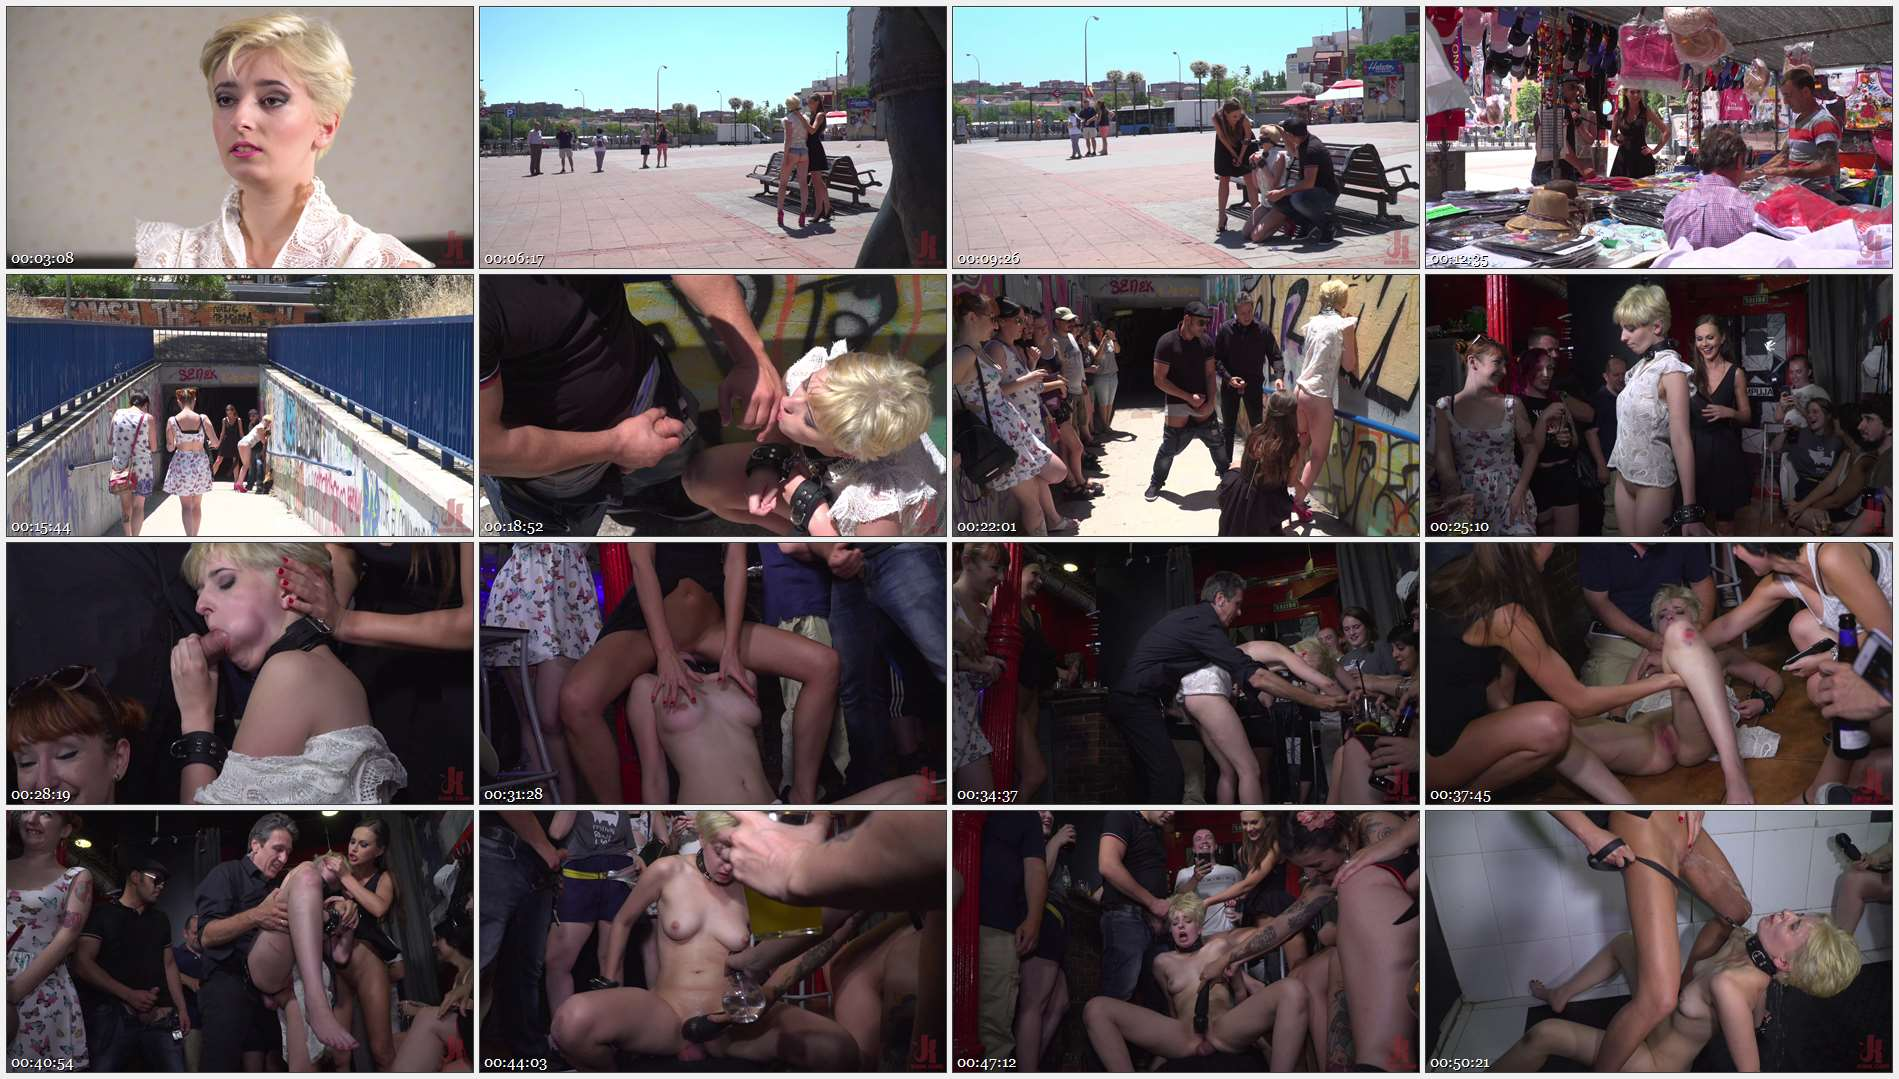 Steve Holmes – Antonio Ross – Tina Kay – Molly Saint Rose – Petite Whore Molly Saint Rose Fucked and Humiliated in Public Plaza!!